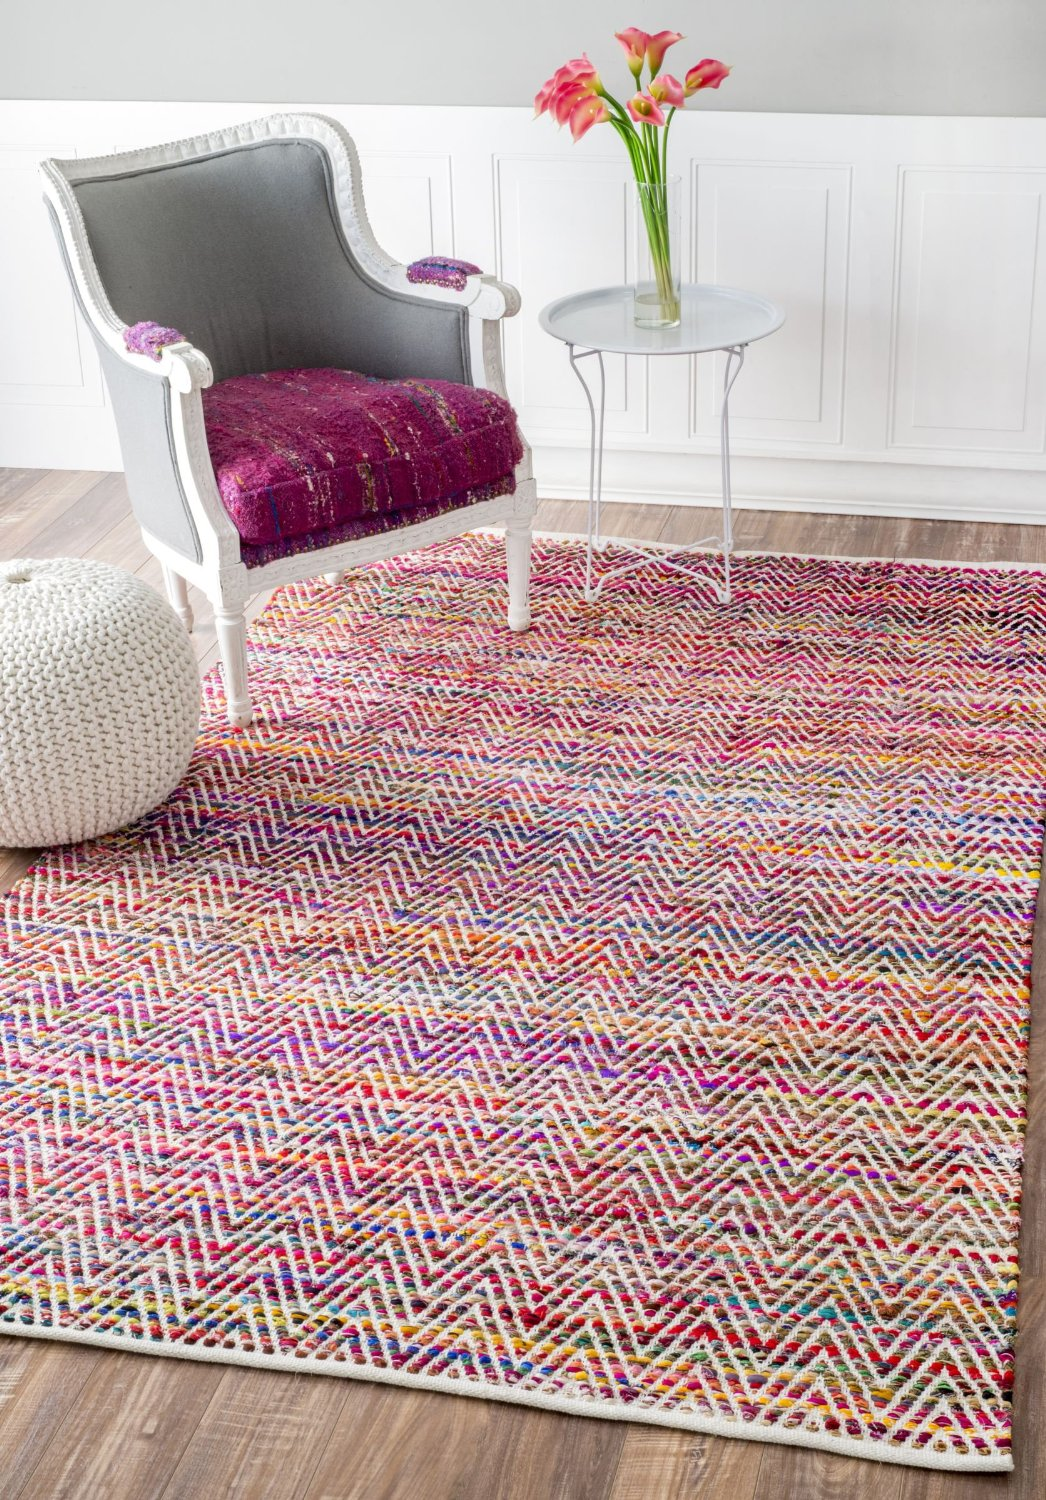 Hand Woven Candy Striped Chevron Magenta Area Rugs, 5 Feet by 8 Feet (5' x 8')